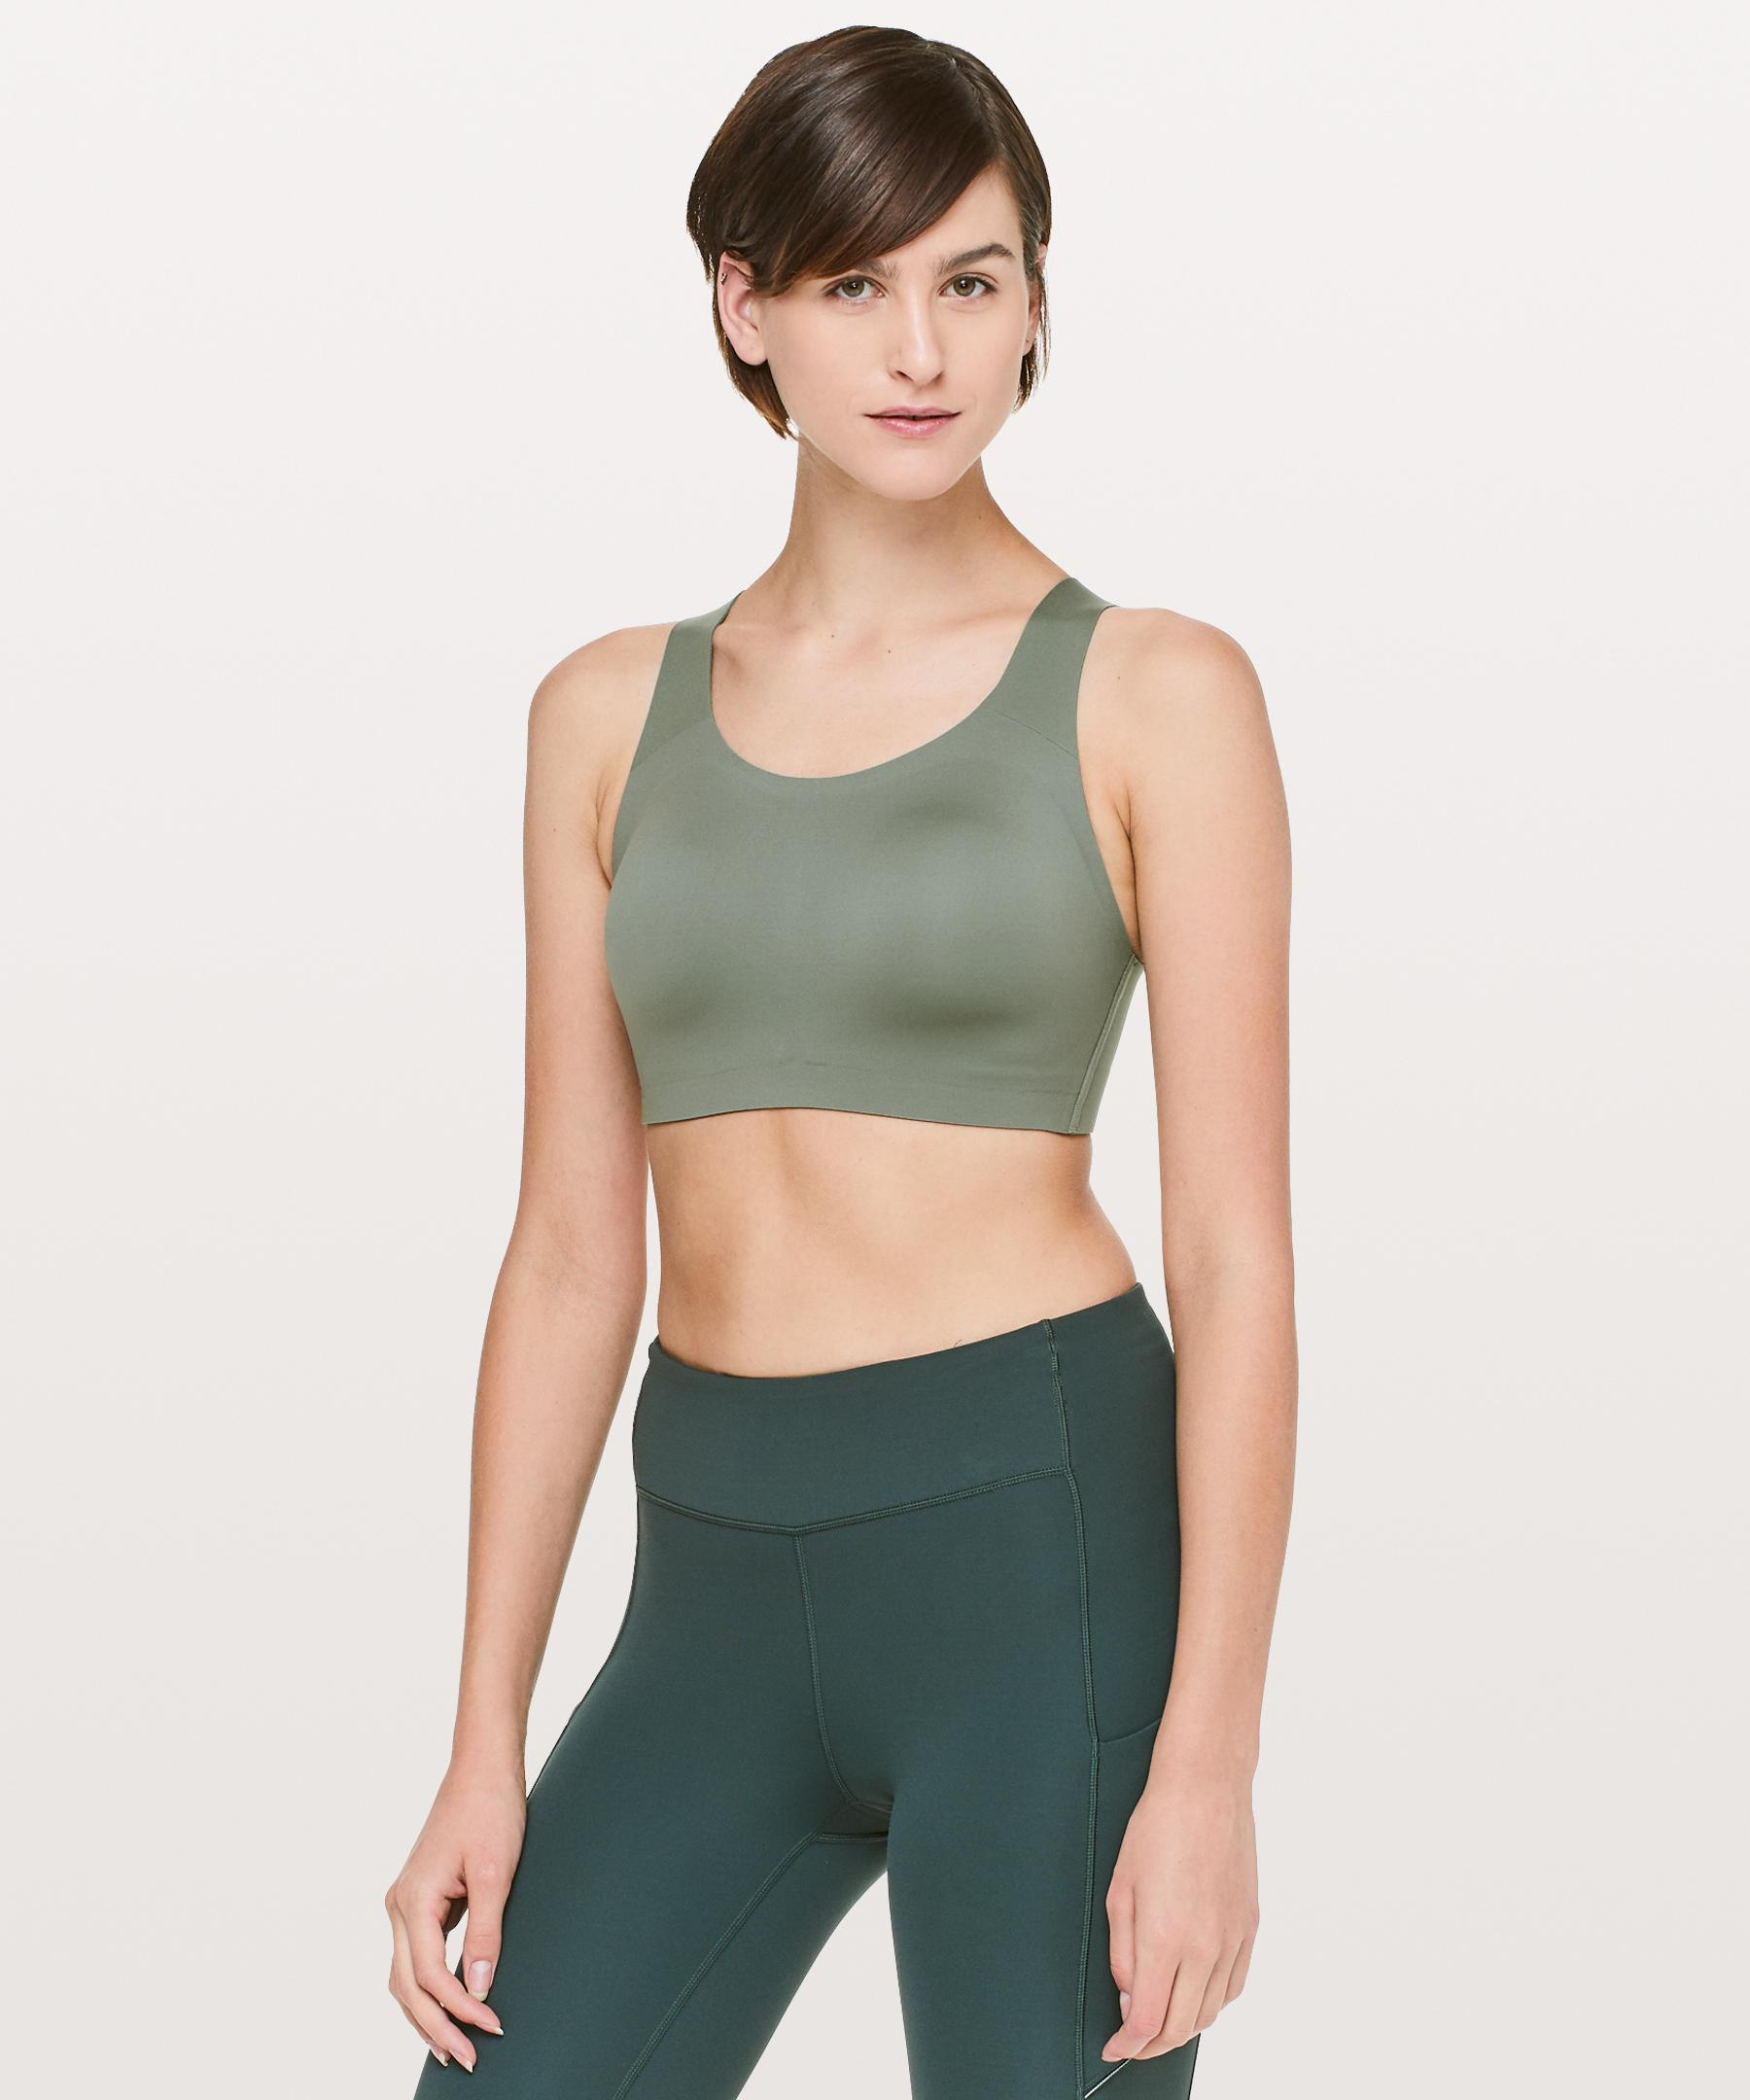 971c5f3ff0 Lyst - lululemon athletica Enlite Bra in Green - Save 60%